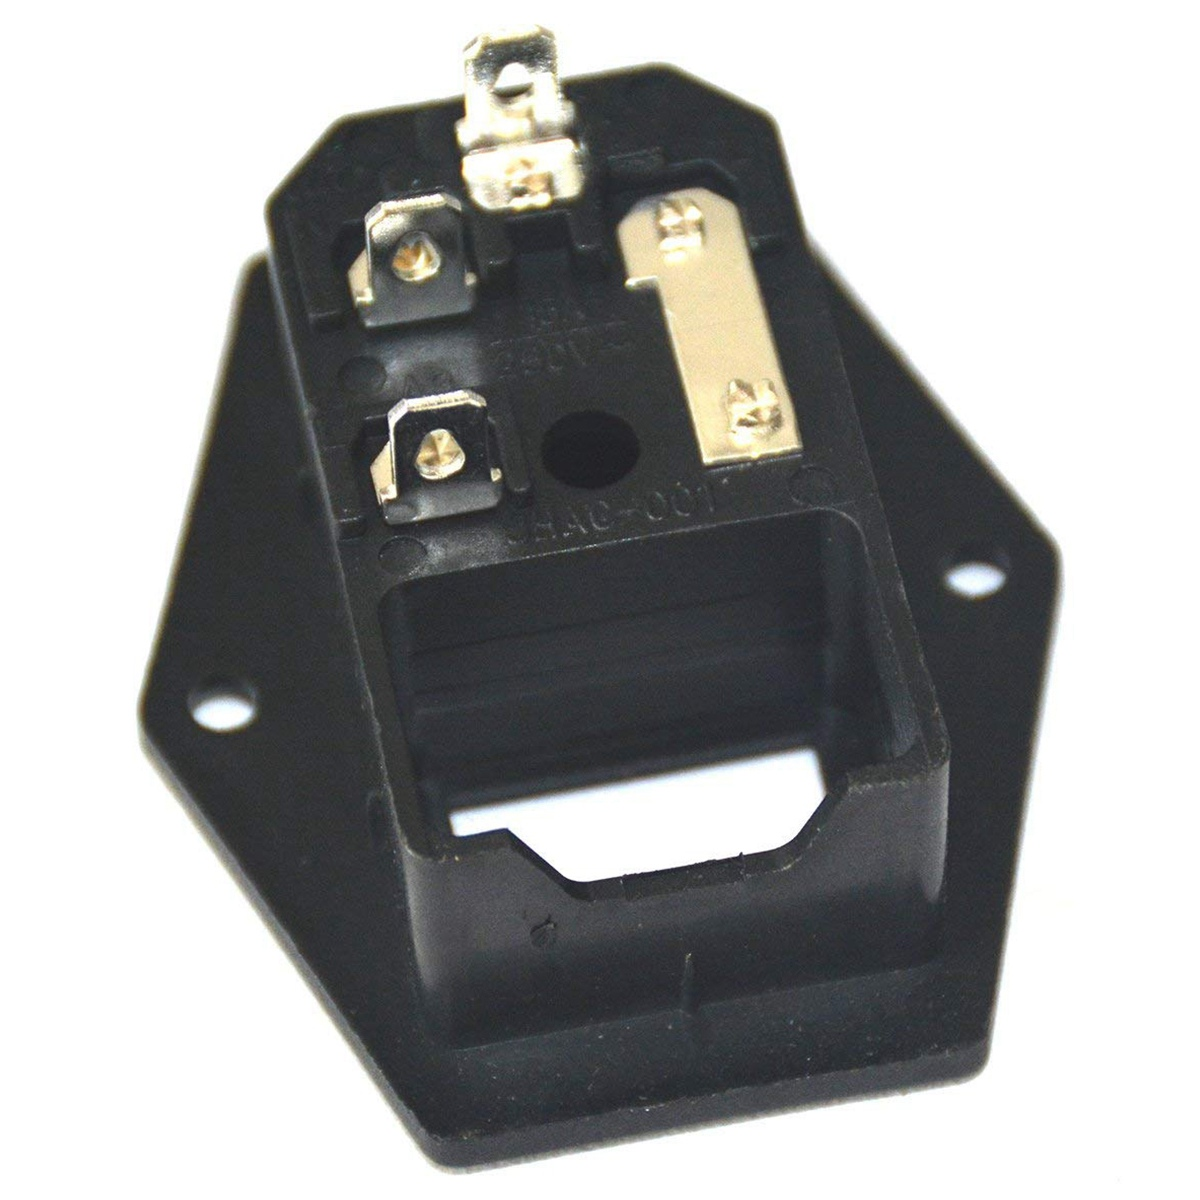 Image 4 - Inlet Male Power Socket With Fuse Rocker Switch, Fuse 3 Pin Iec320 250V 15A C14 Inlet Module For Computer And Home Appliance P-in Electrical Sockets from Home Improvement